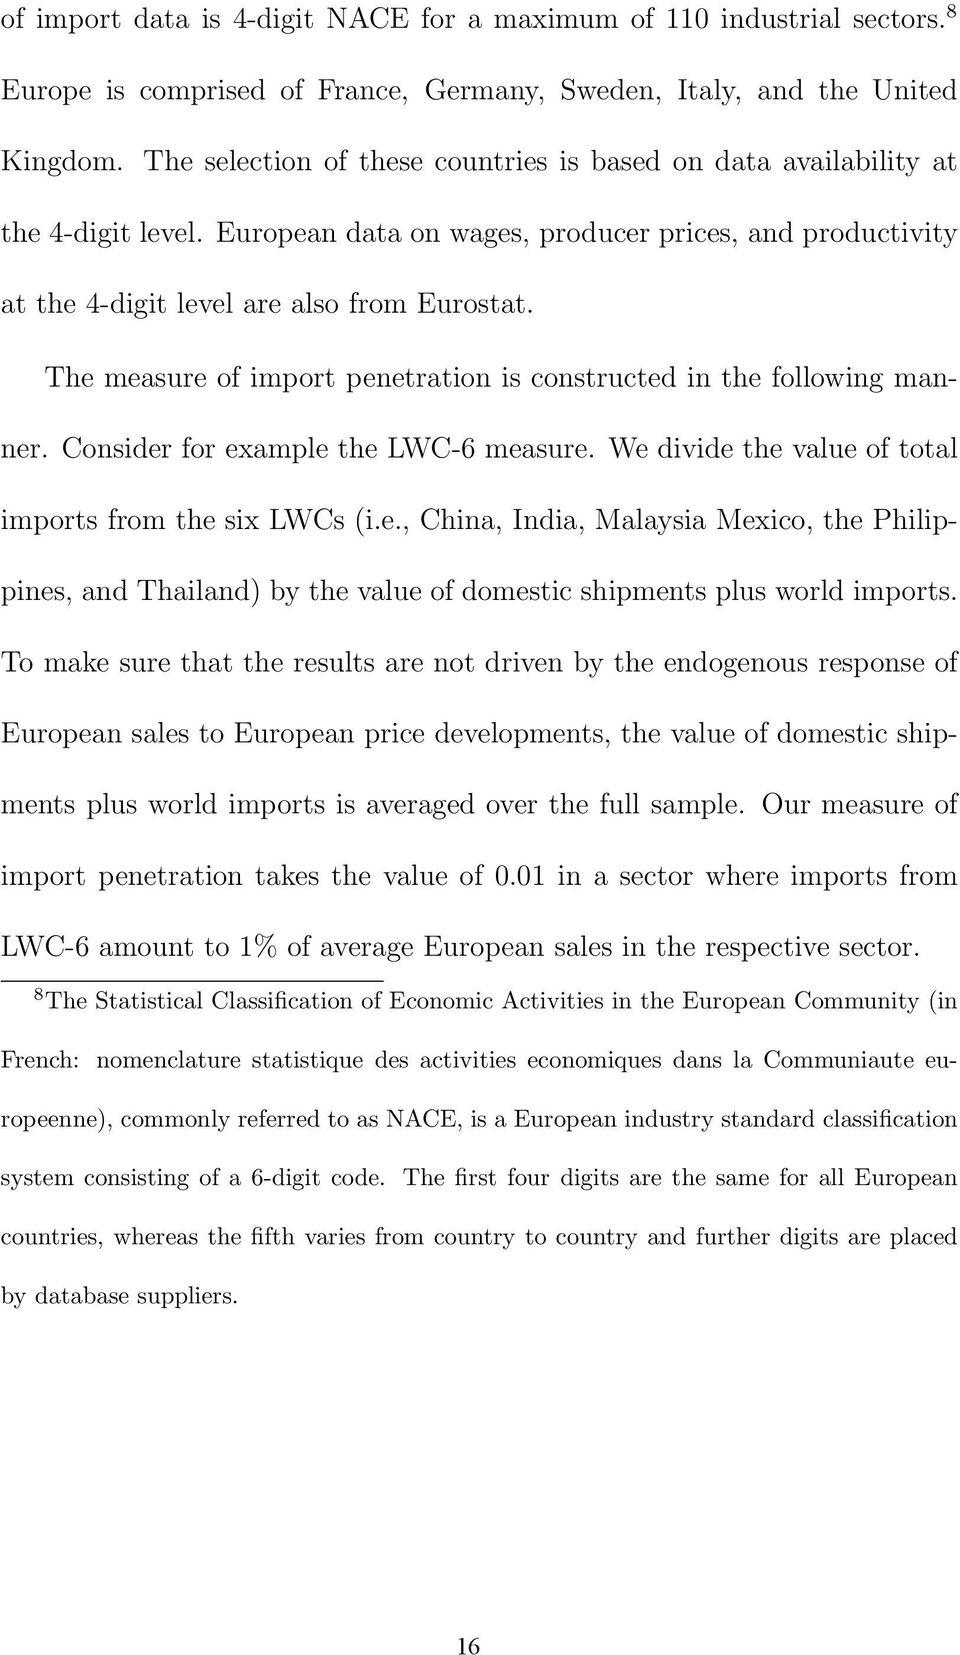 The measure of import penetration is constructed in the following manner. Consider for example the LWC-6 measure. We divide the value of total imports from the six LWCs (i.e., China, India, Malaysia Mexico, the Philippines, and Thailand) by the value of domestic shipments plus world imports.